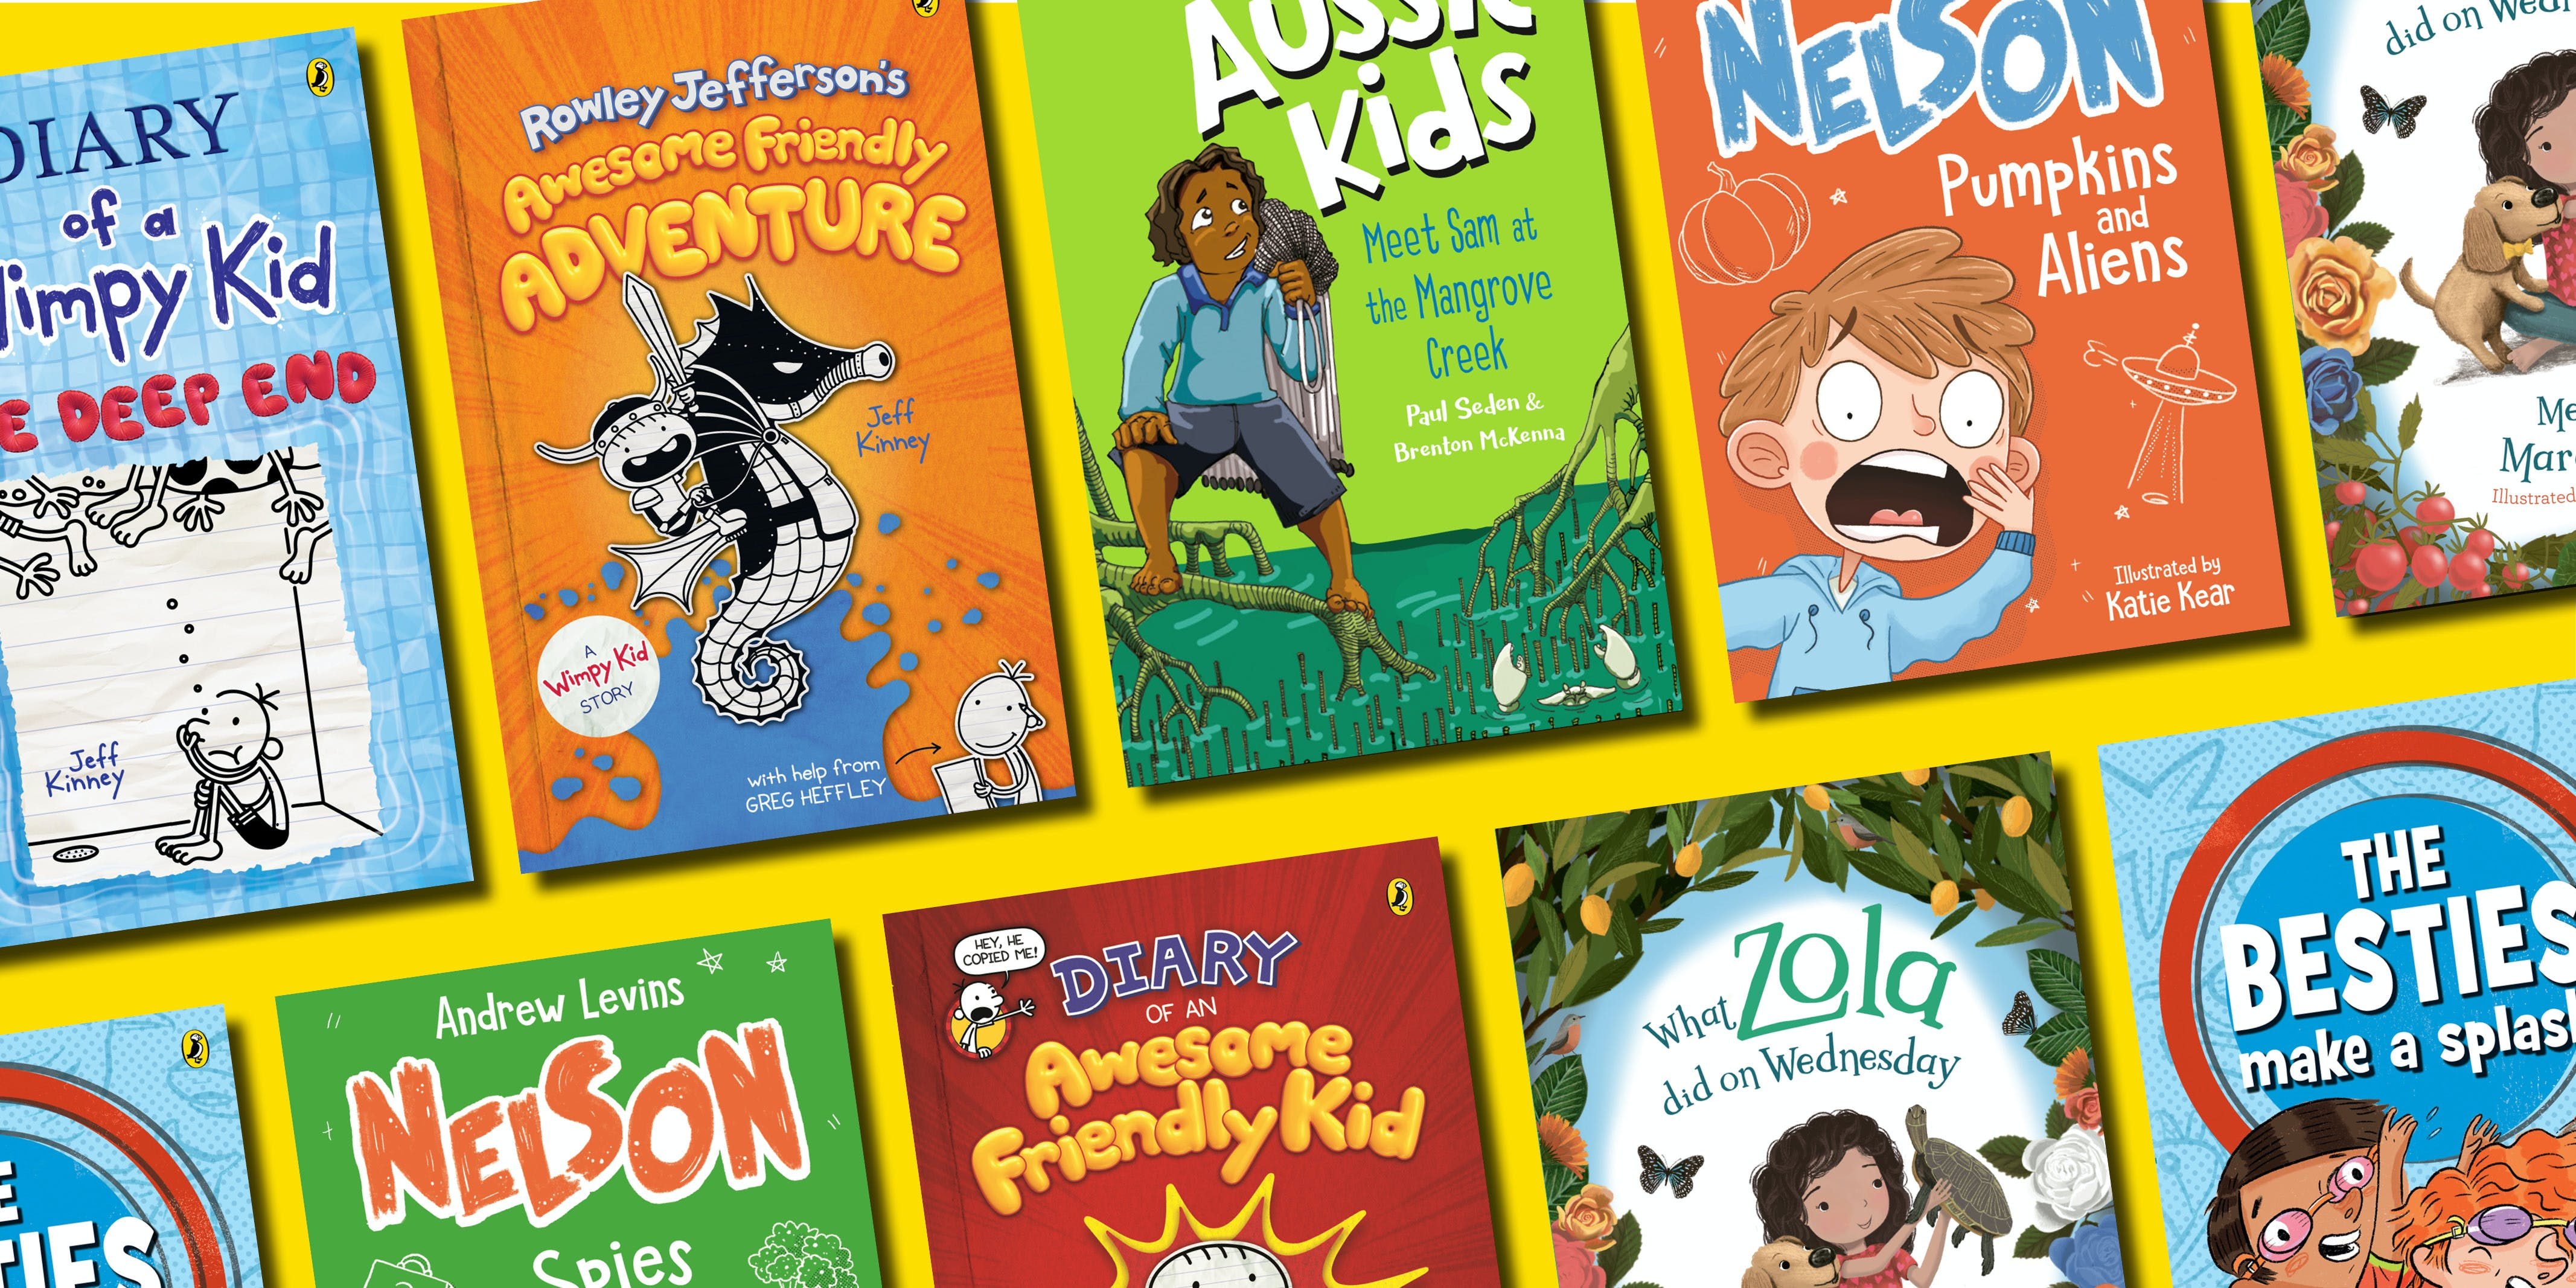 6 incredible book series to get your 7-year-old hooked on reading